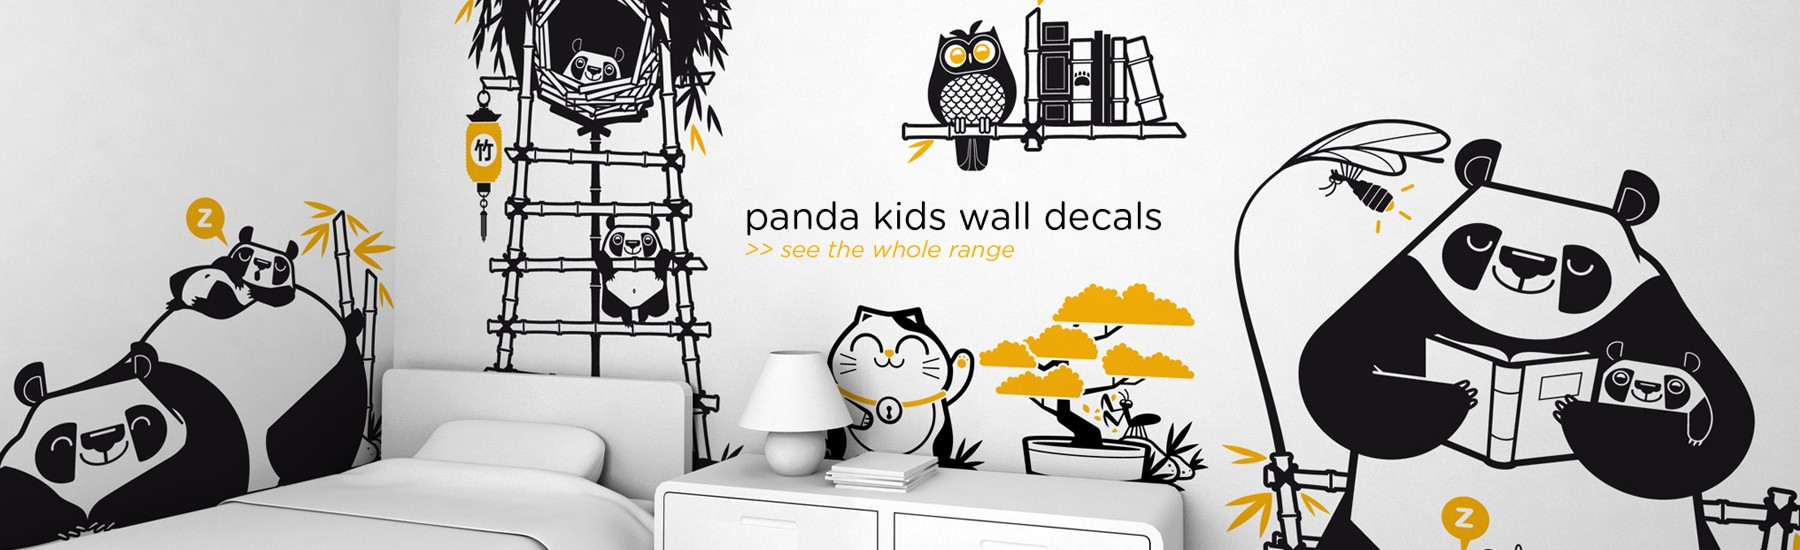 panda-decals-pack